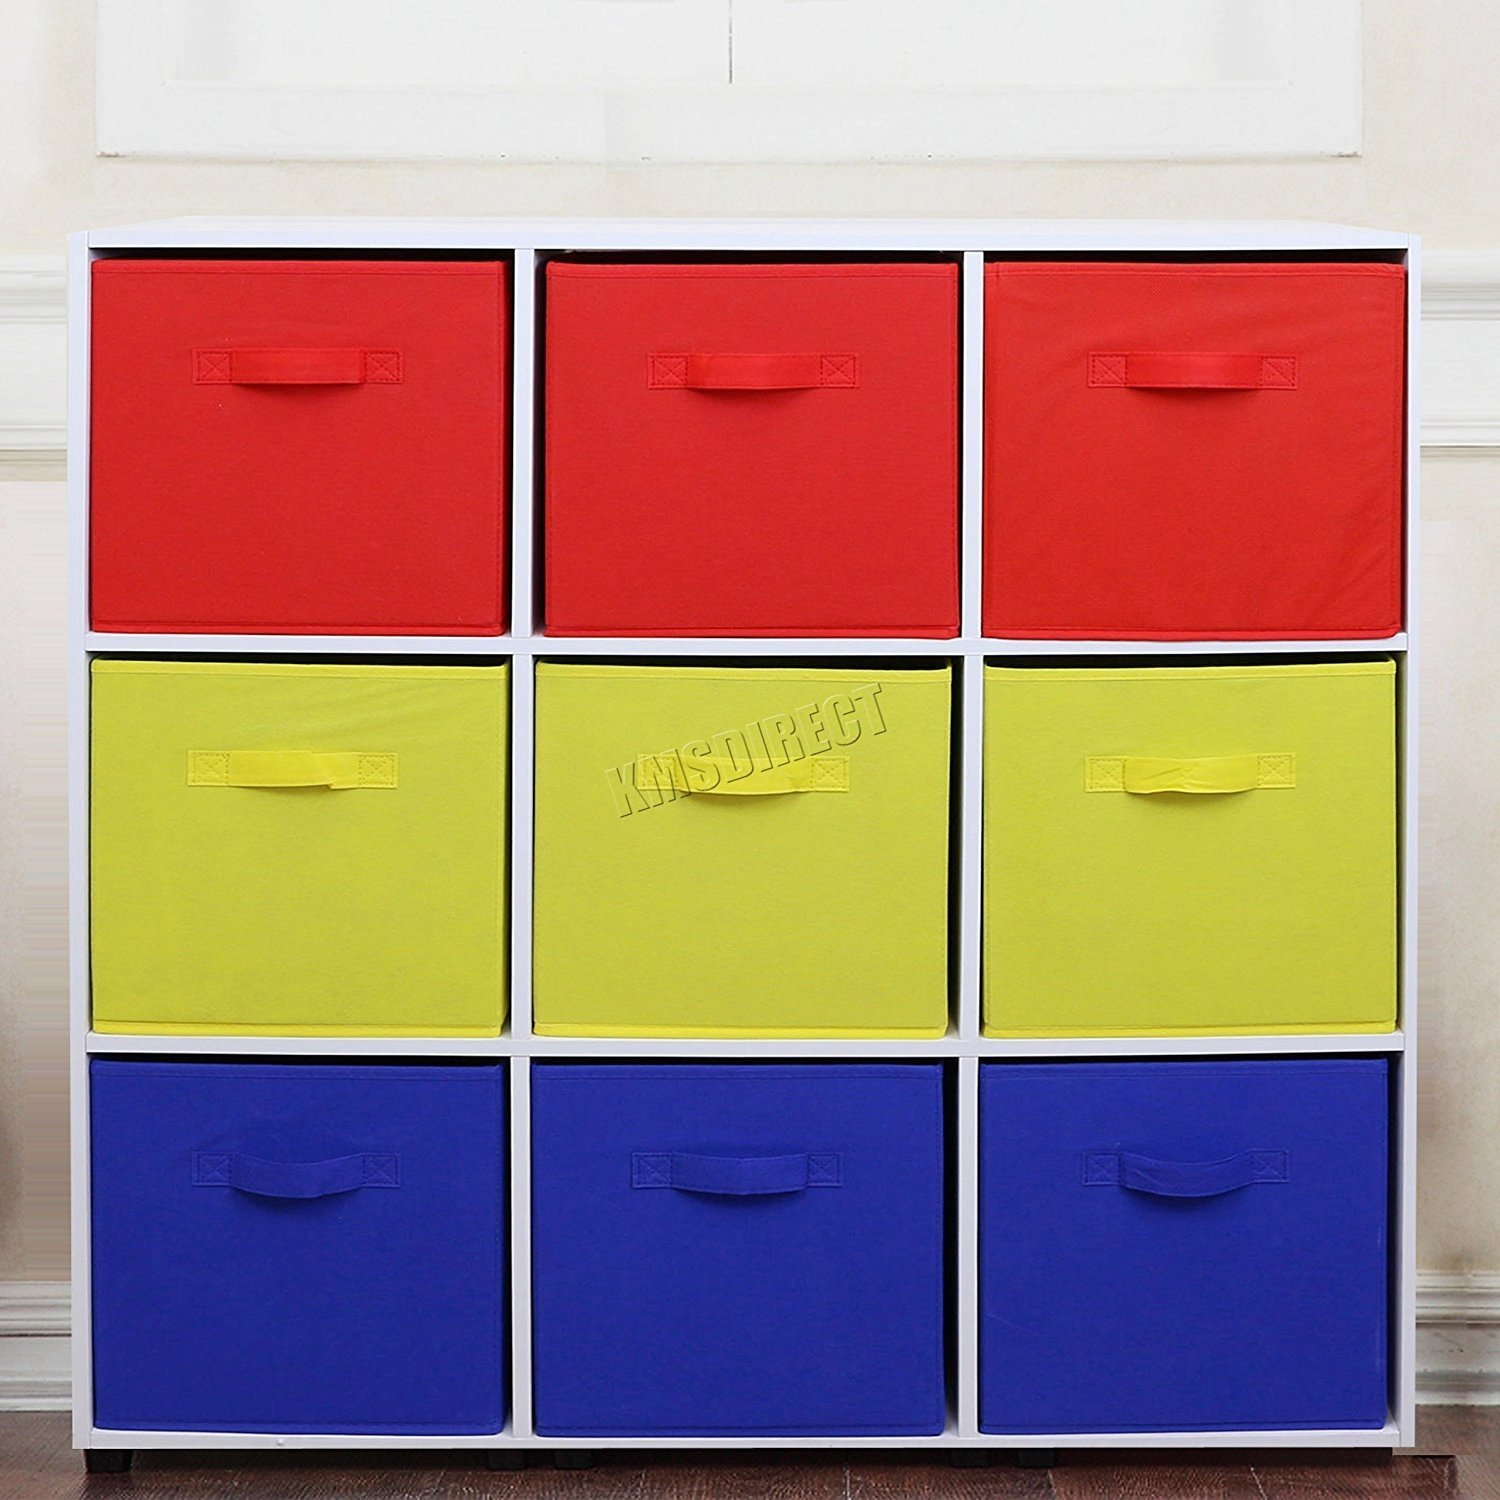 FoxHunter 9 Cube Toy Games Storage Display Shelves Bookshelf With 9 Free Woven Drawers 3 Tier Unit Organiser Rack Kids Children Bedroom TSS03 PB Blue Red Yellow KMS